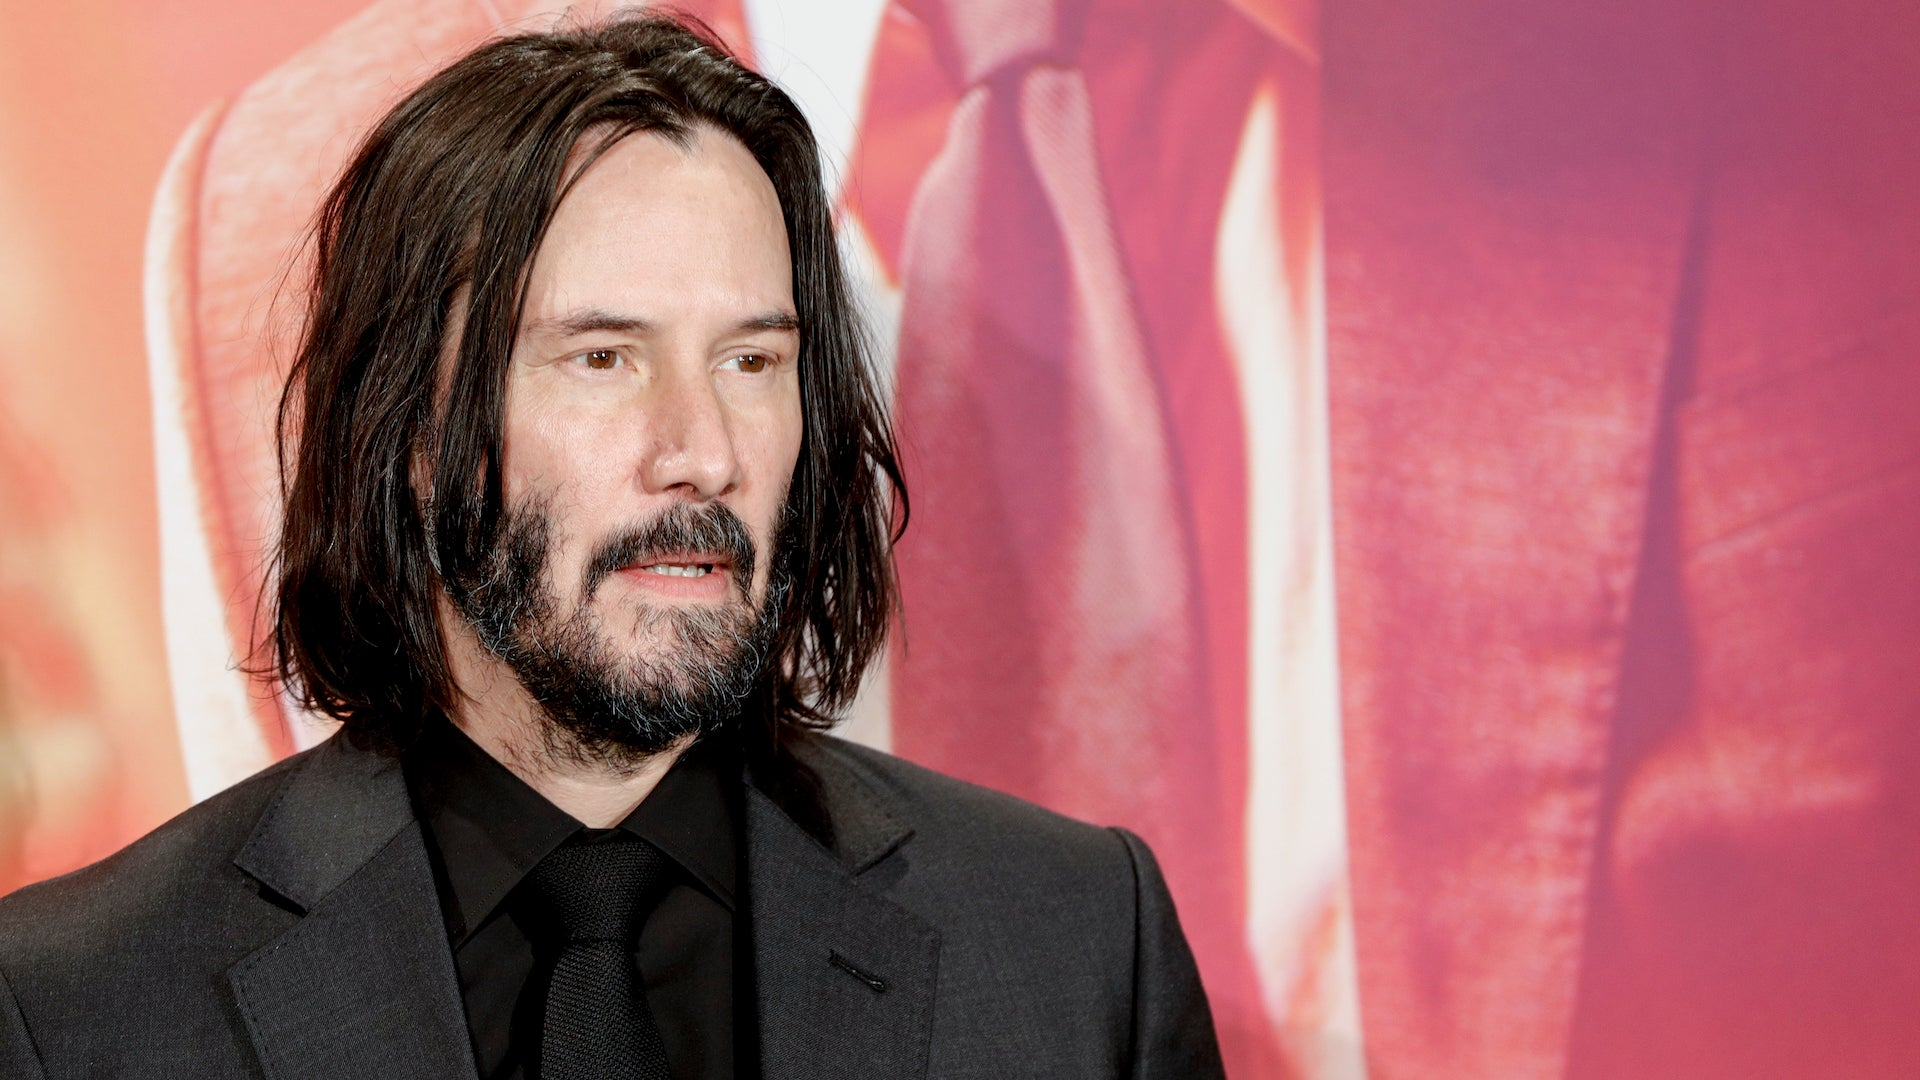 Keanu Reeves Is A Proud Person Of Color, But Doesn't Want To Be 'A Spokesperson'